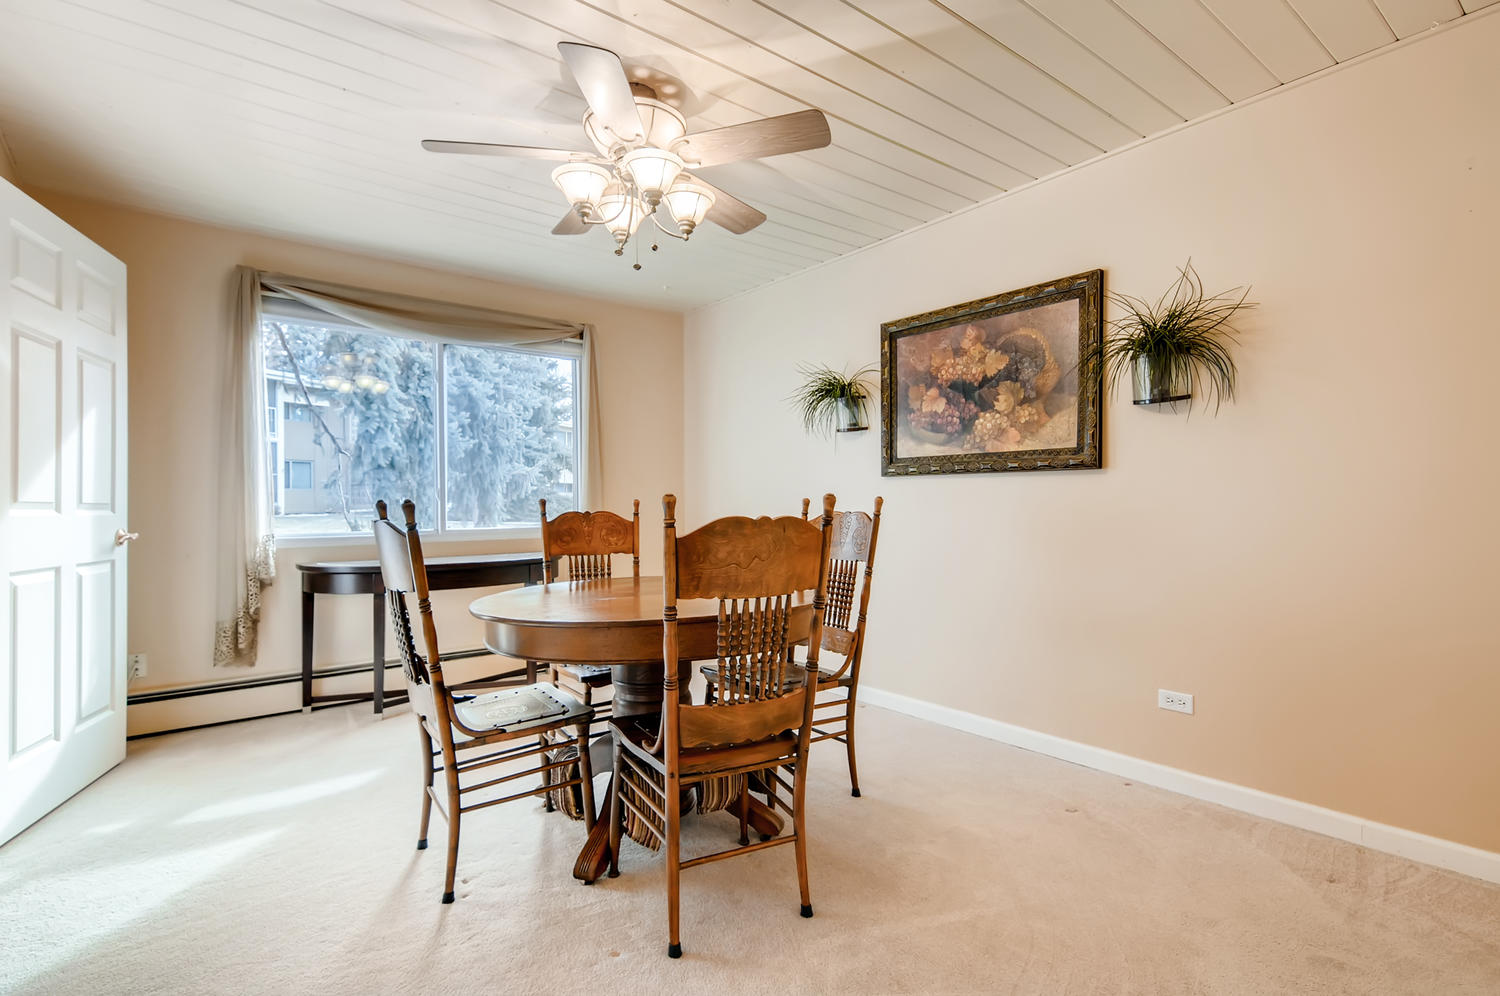 665 S Clinton St 6A Denver CO-large-011-009-Dining Room-1500x997-72dpi